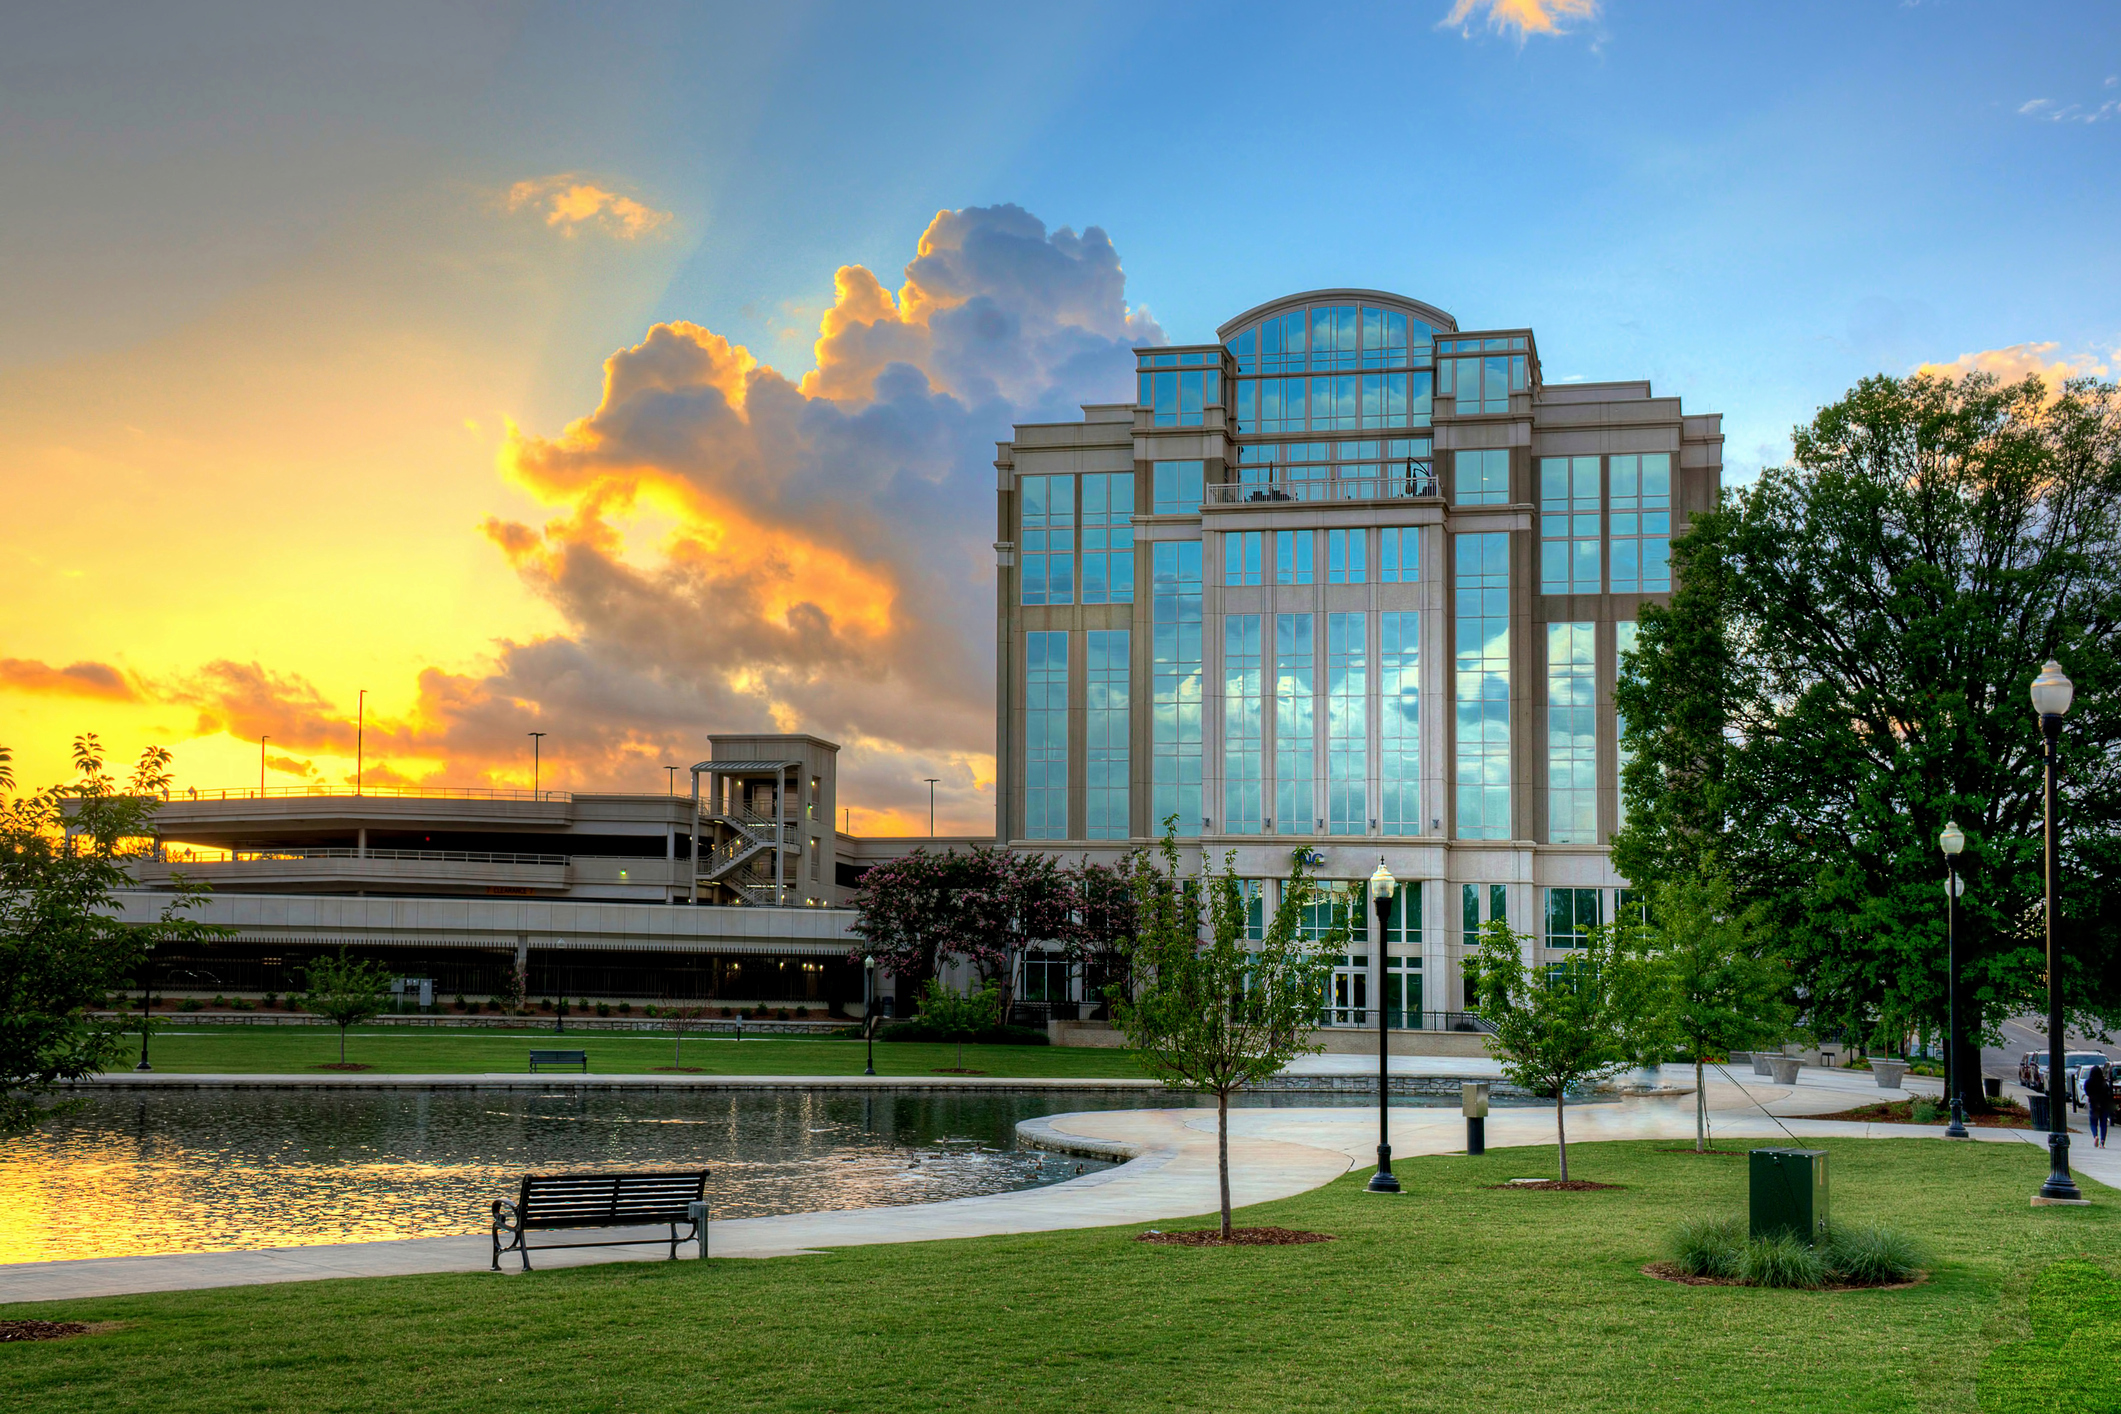 Top 7 Places To Visit in Huntsville?